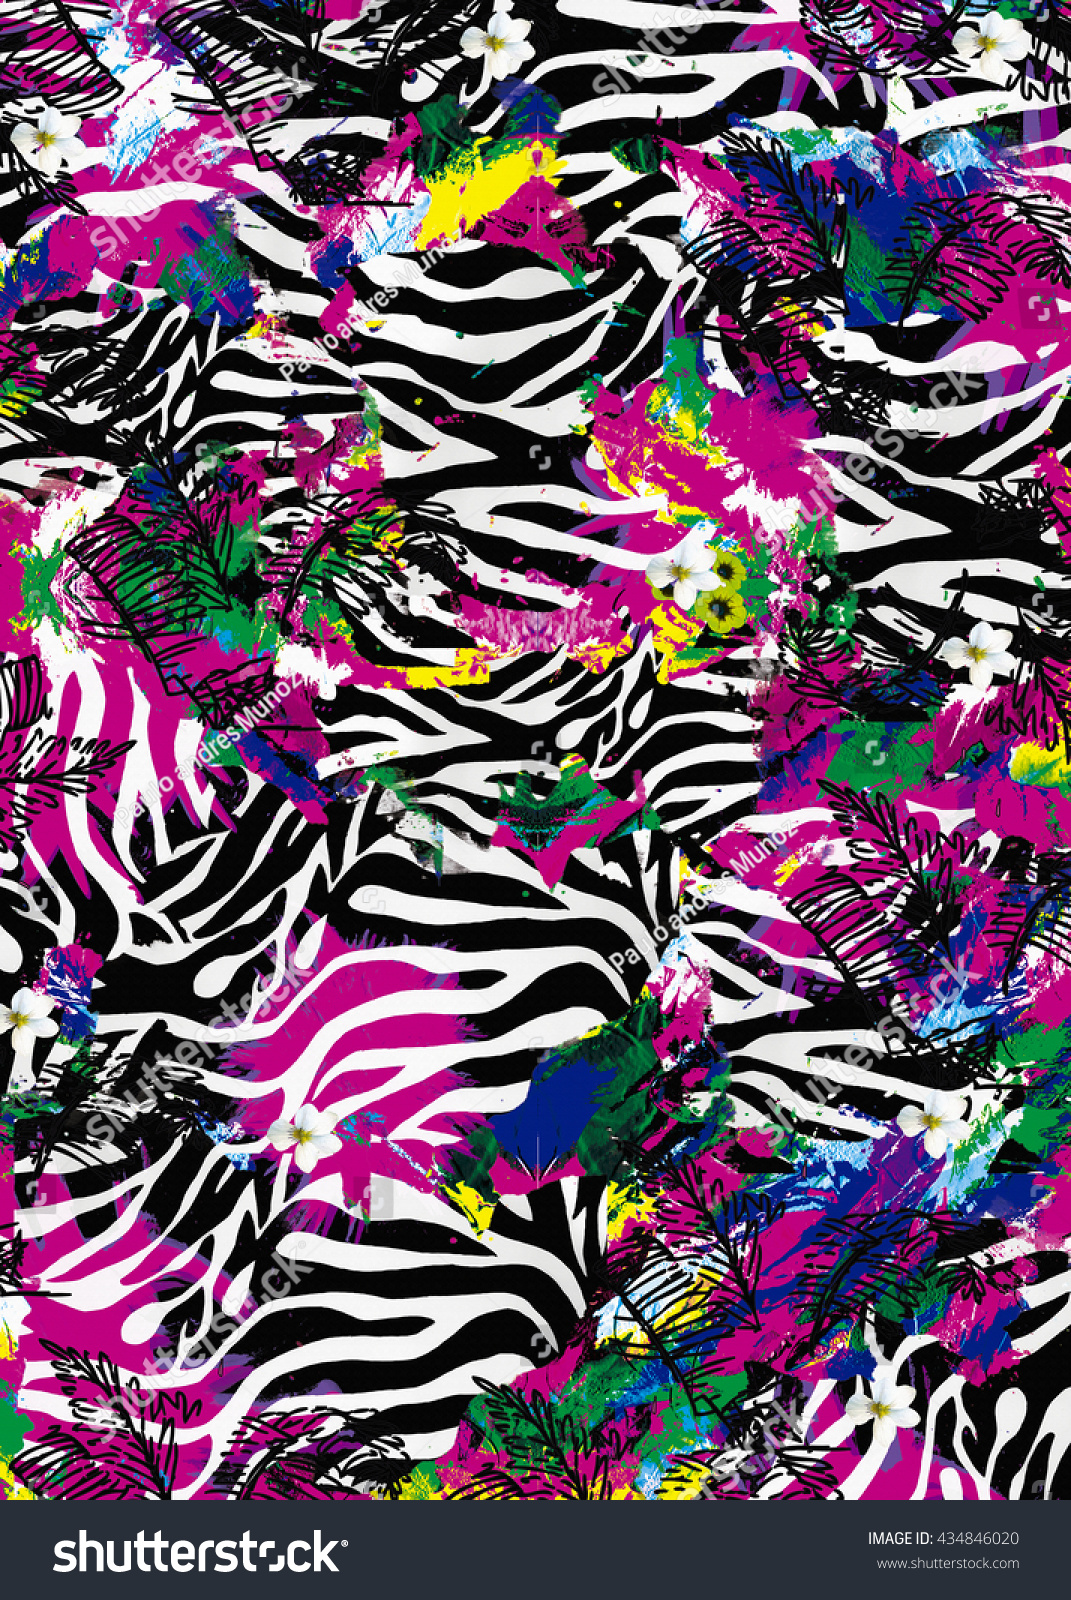 zebra spots. sublimation print design Design For textile printing neon prints abstract